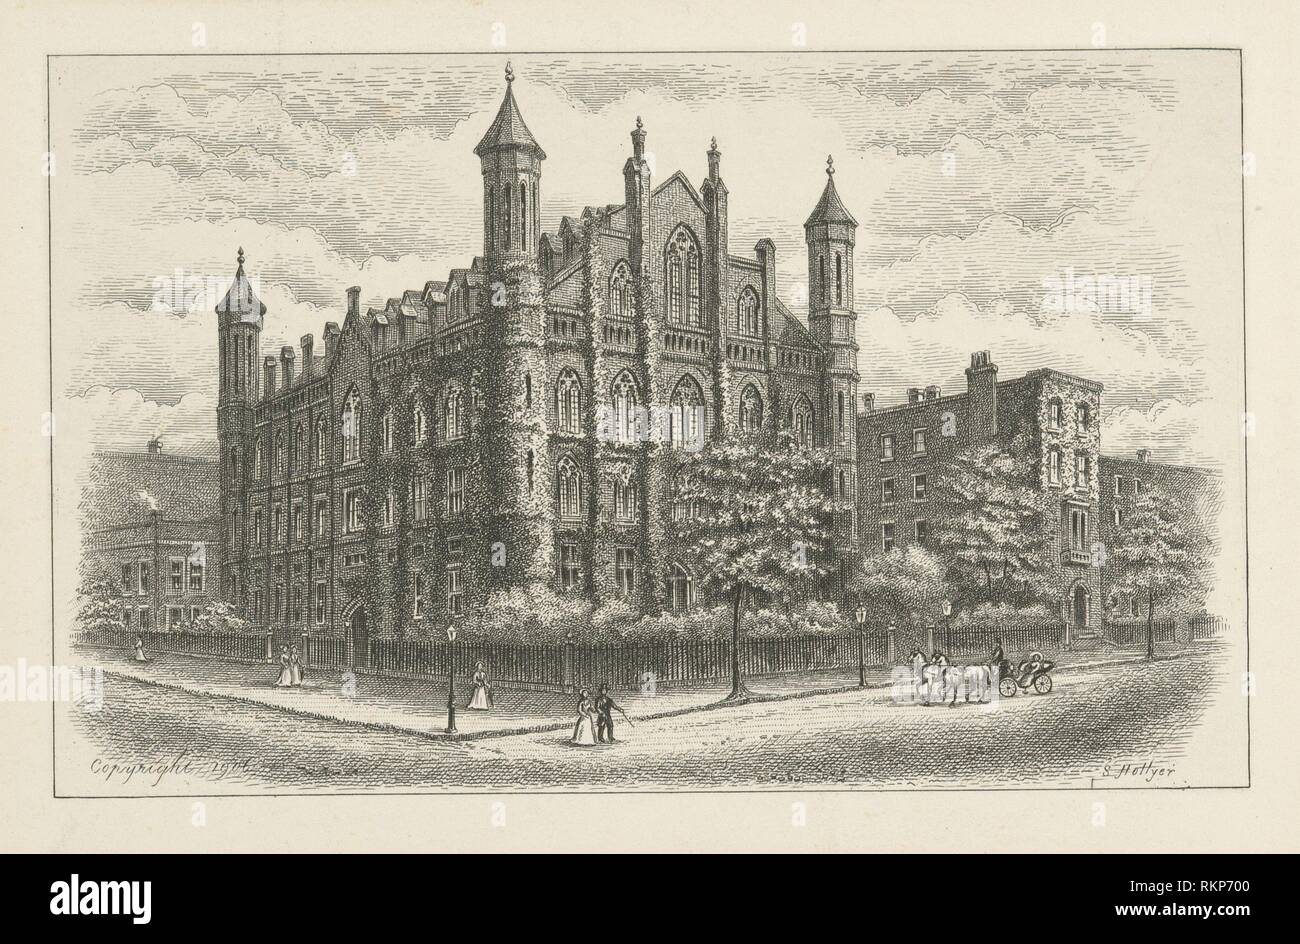 College of the city of New York. Hollyer, Samuel (1826-1919) (Artist). I. N. Phelps Stokes Collection of American Historical Prints Individual - Stock Image